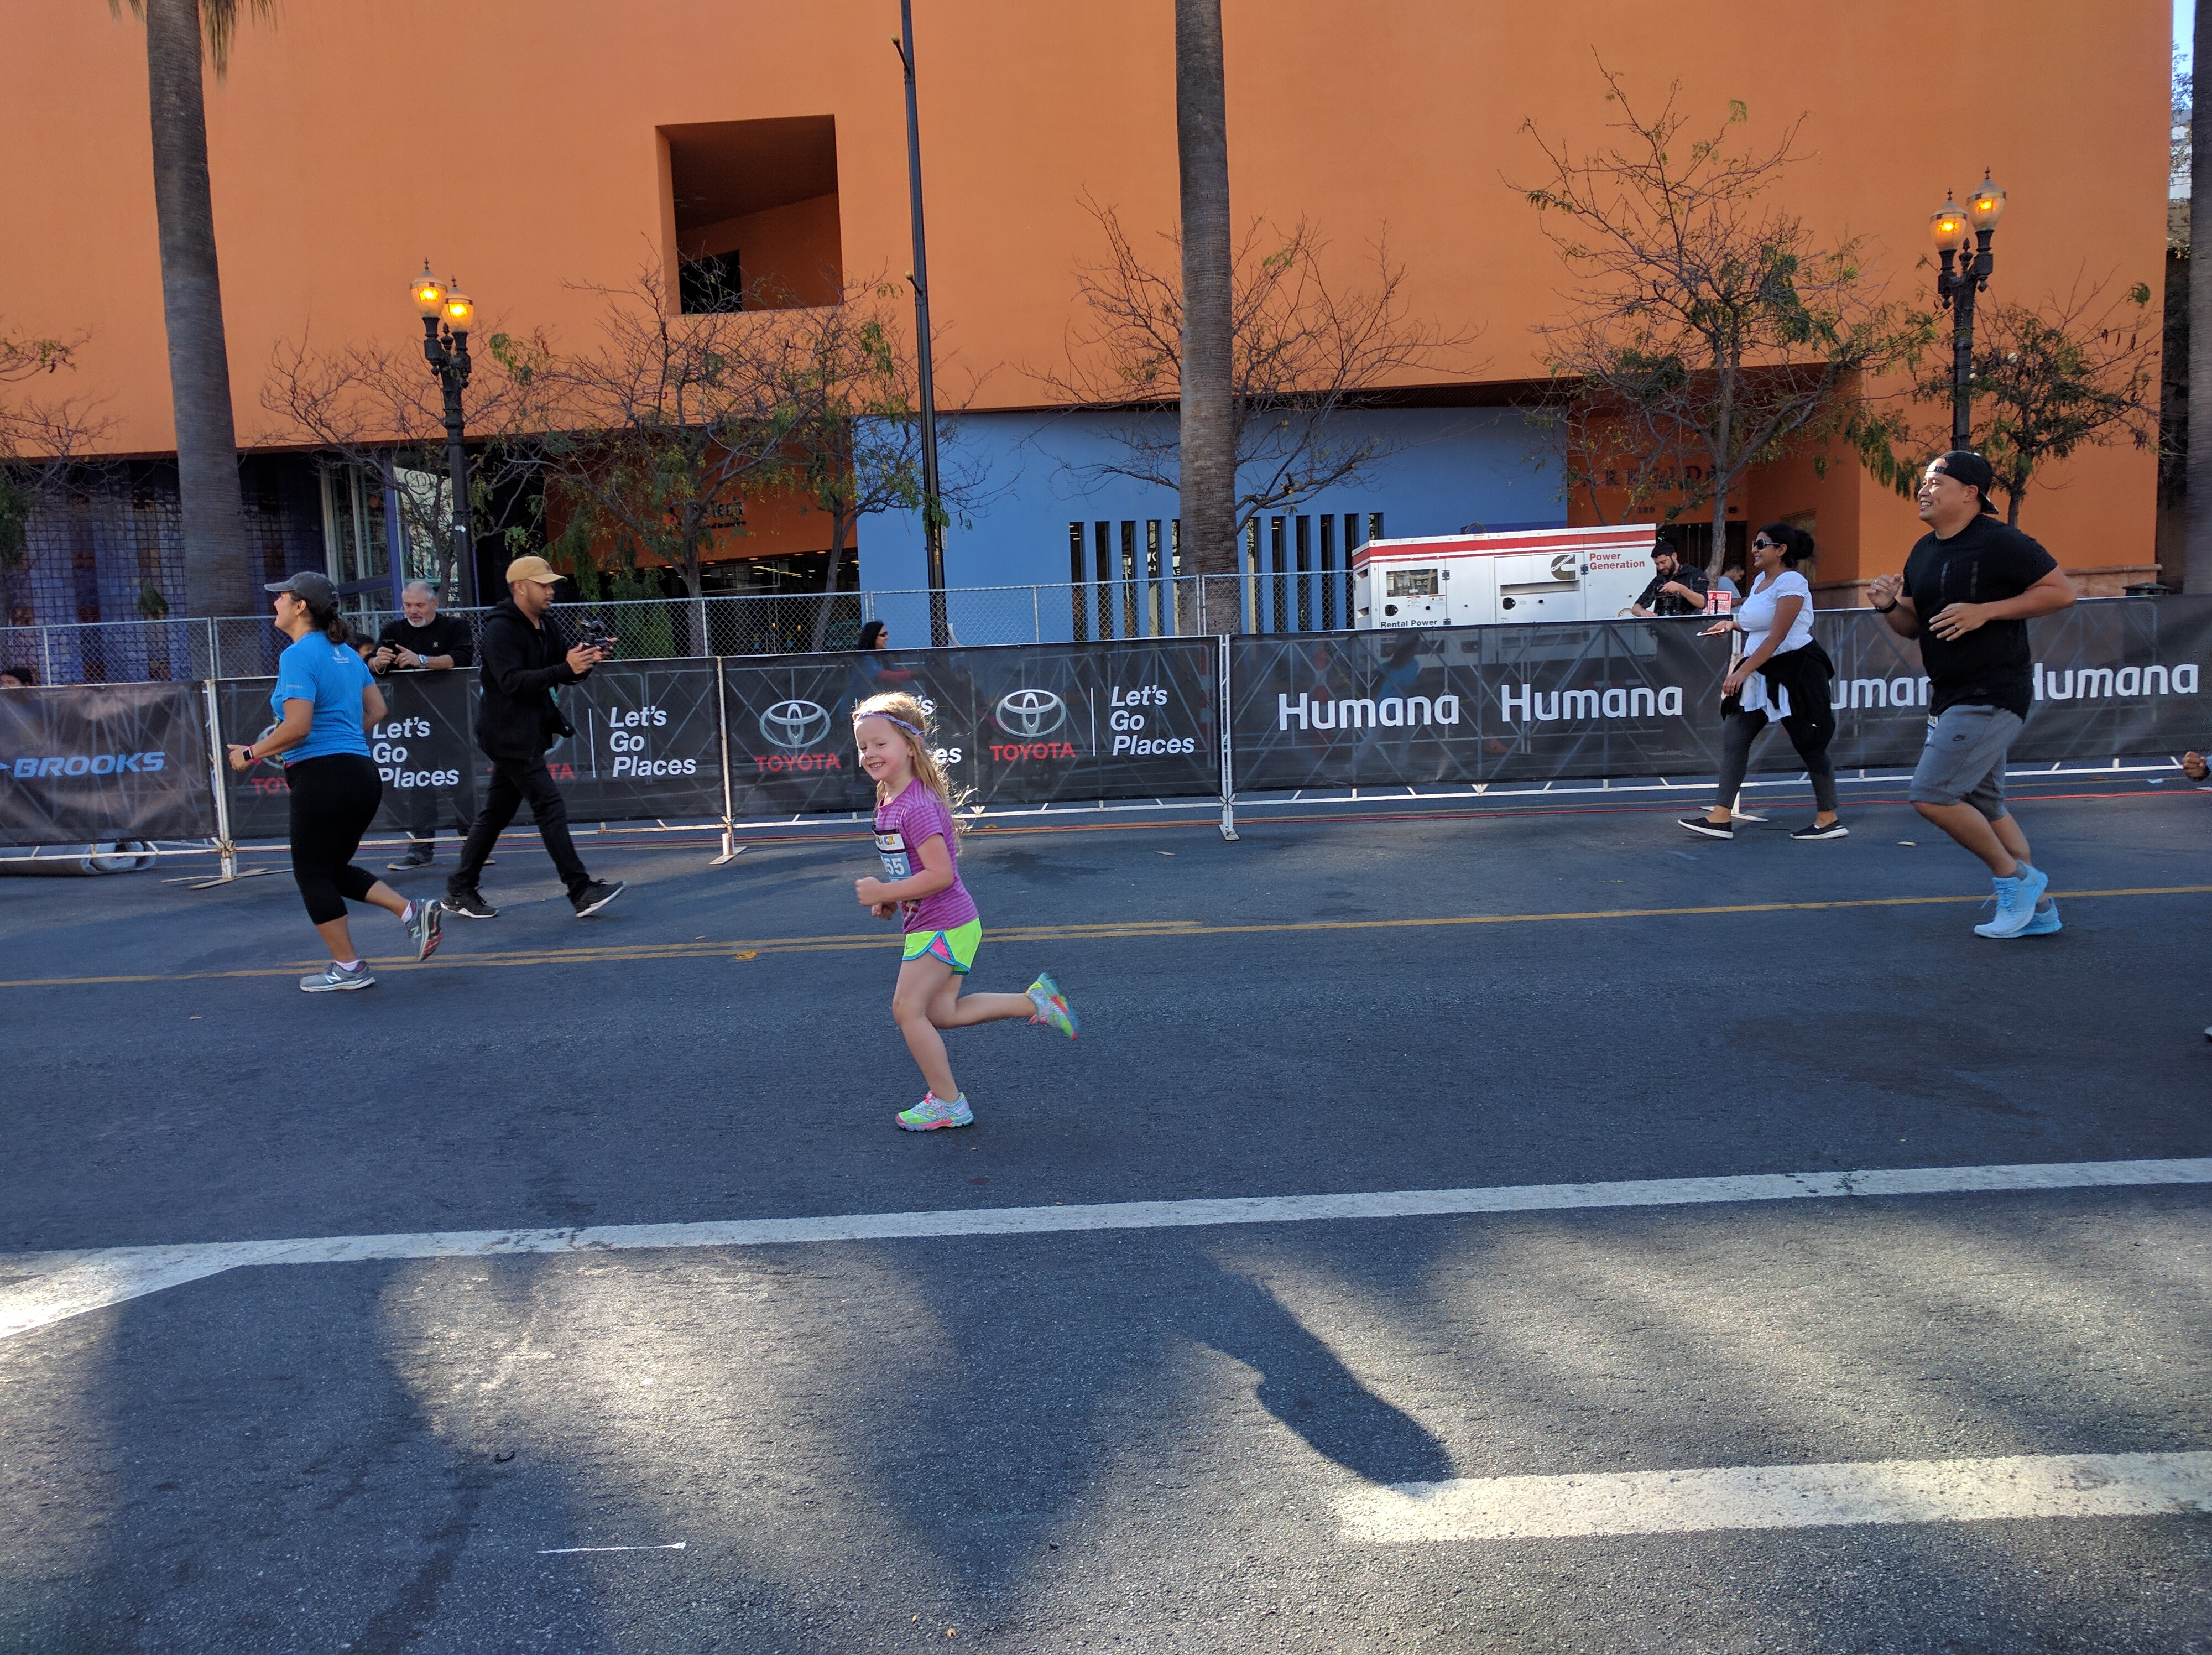 almost at the end of the 800m kids' race. It blows my mind that she can run with her hair down bc that'd drive me crazy!